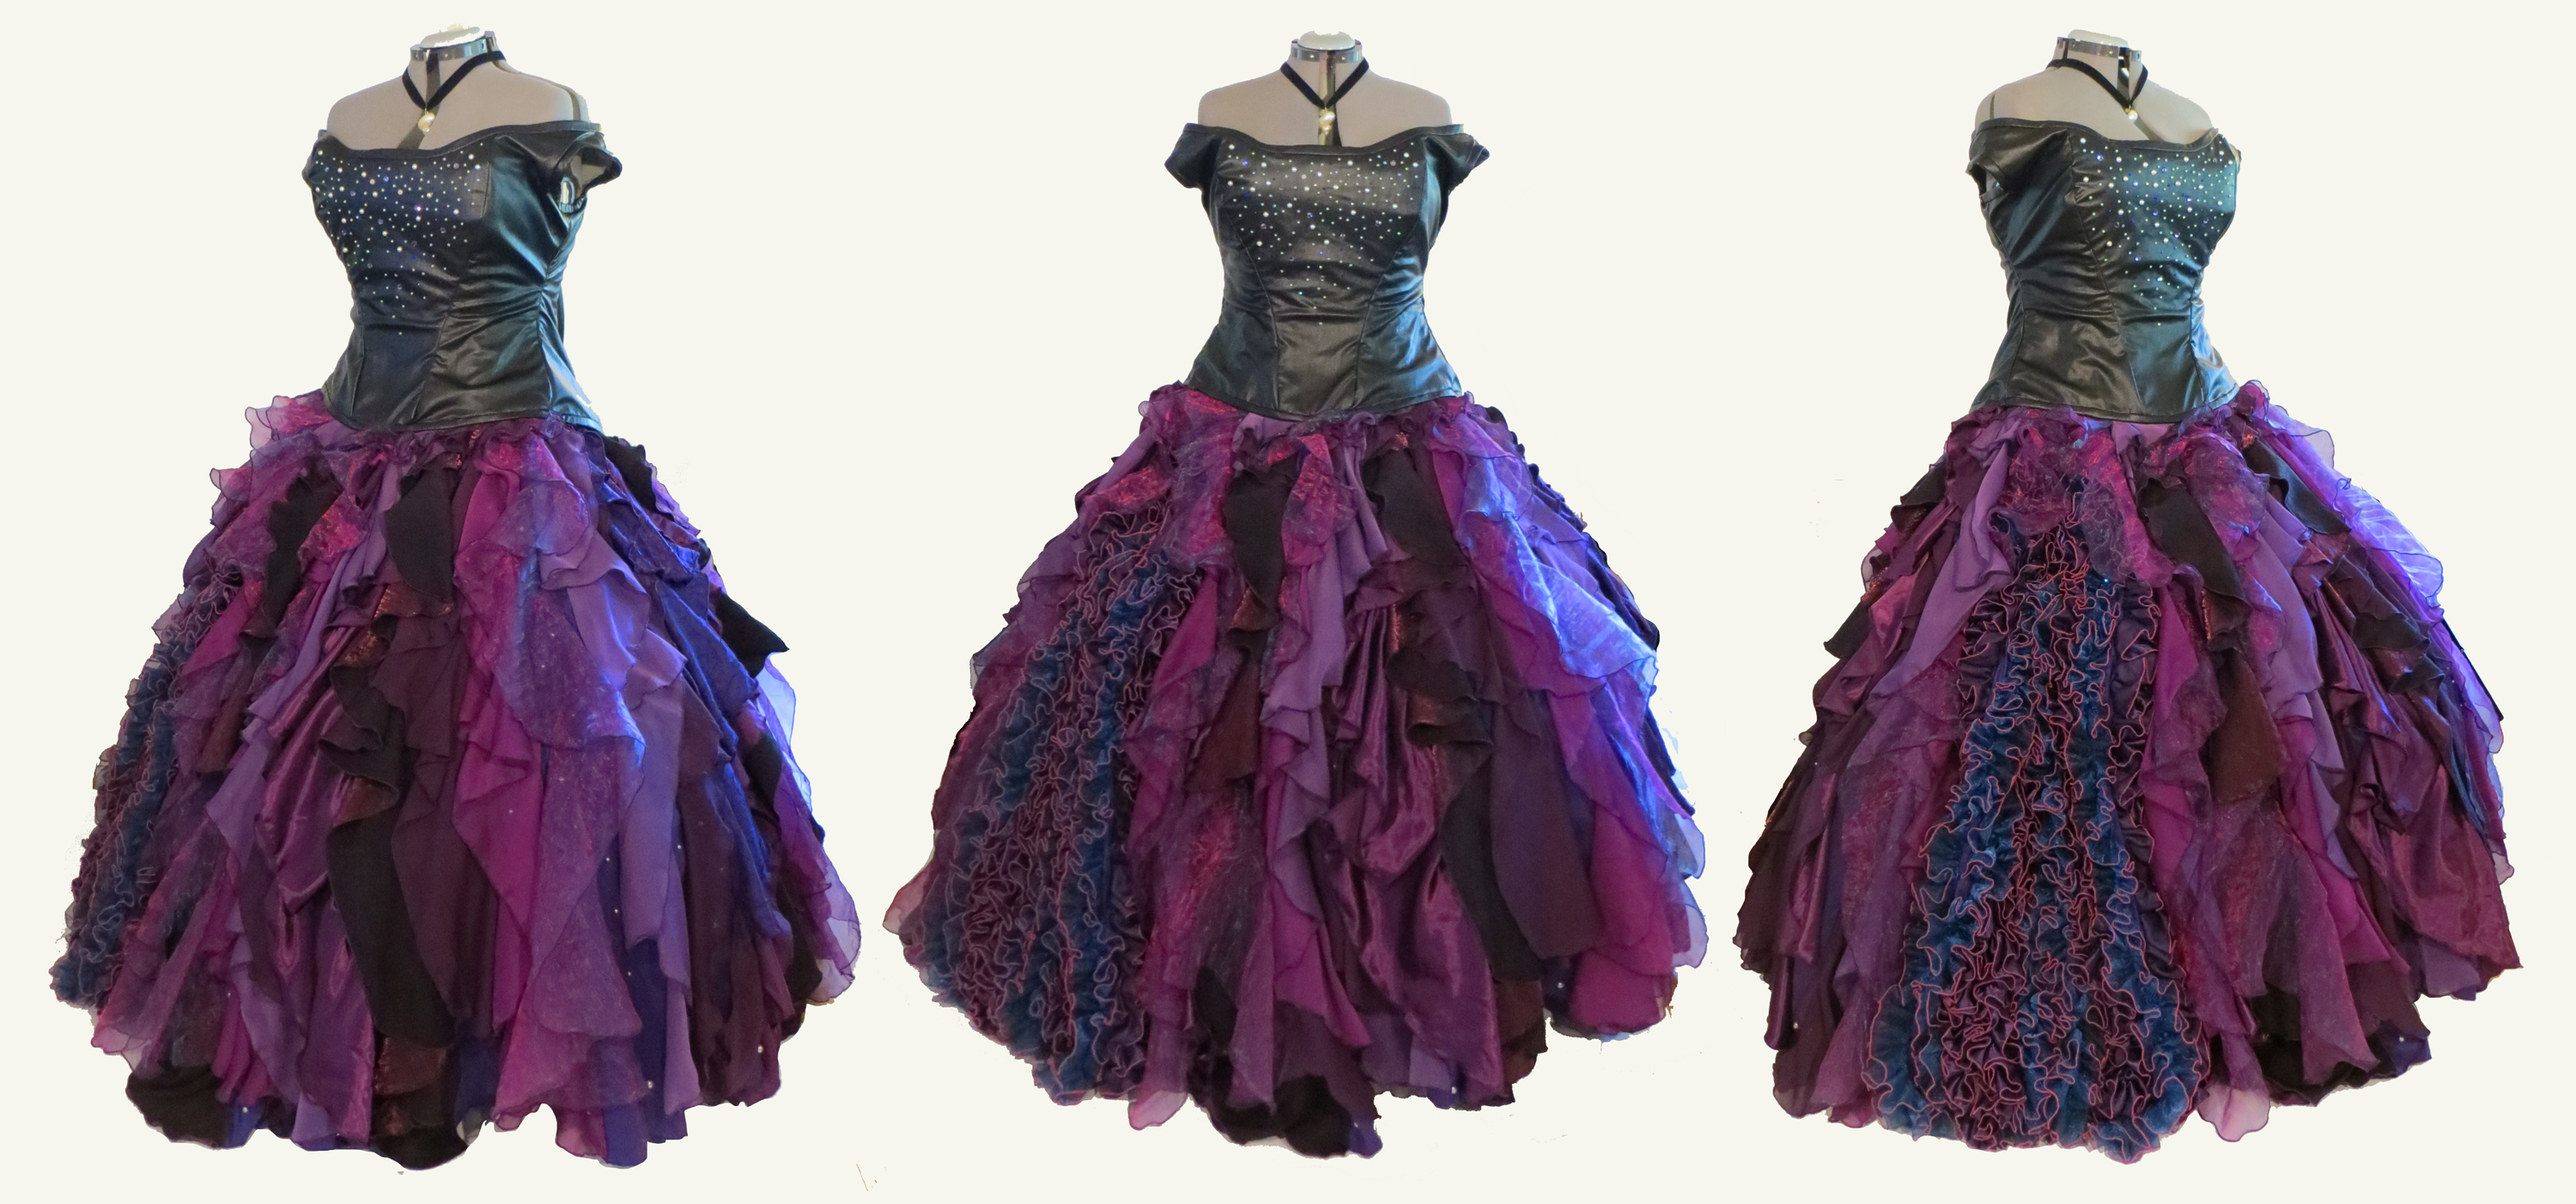 Sea Witch Ball Gown